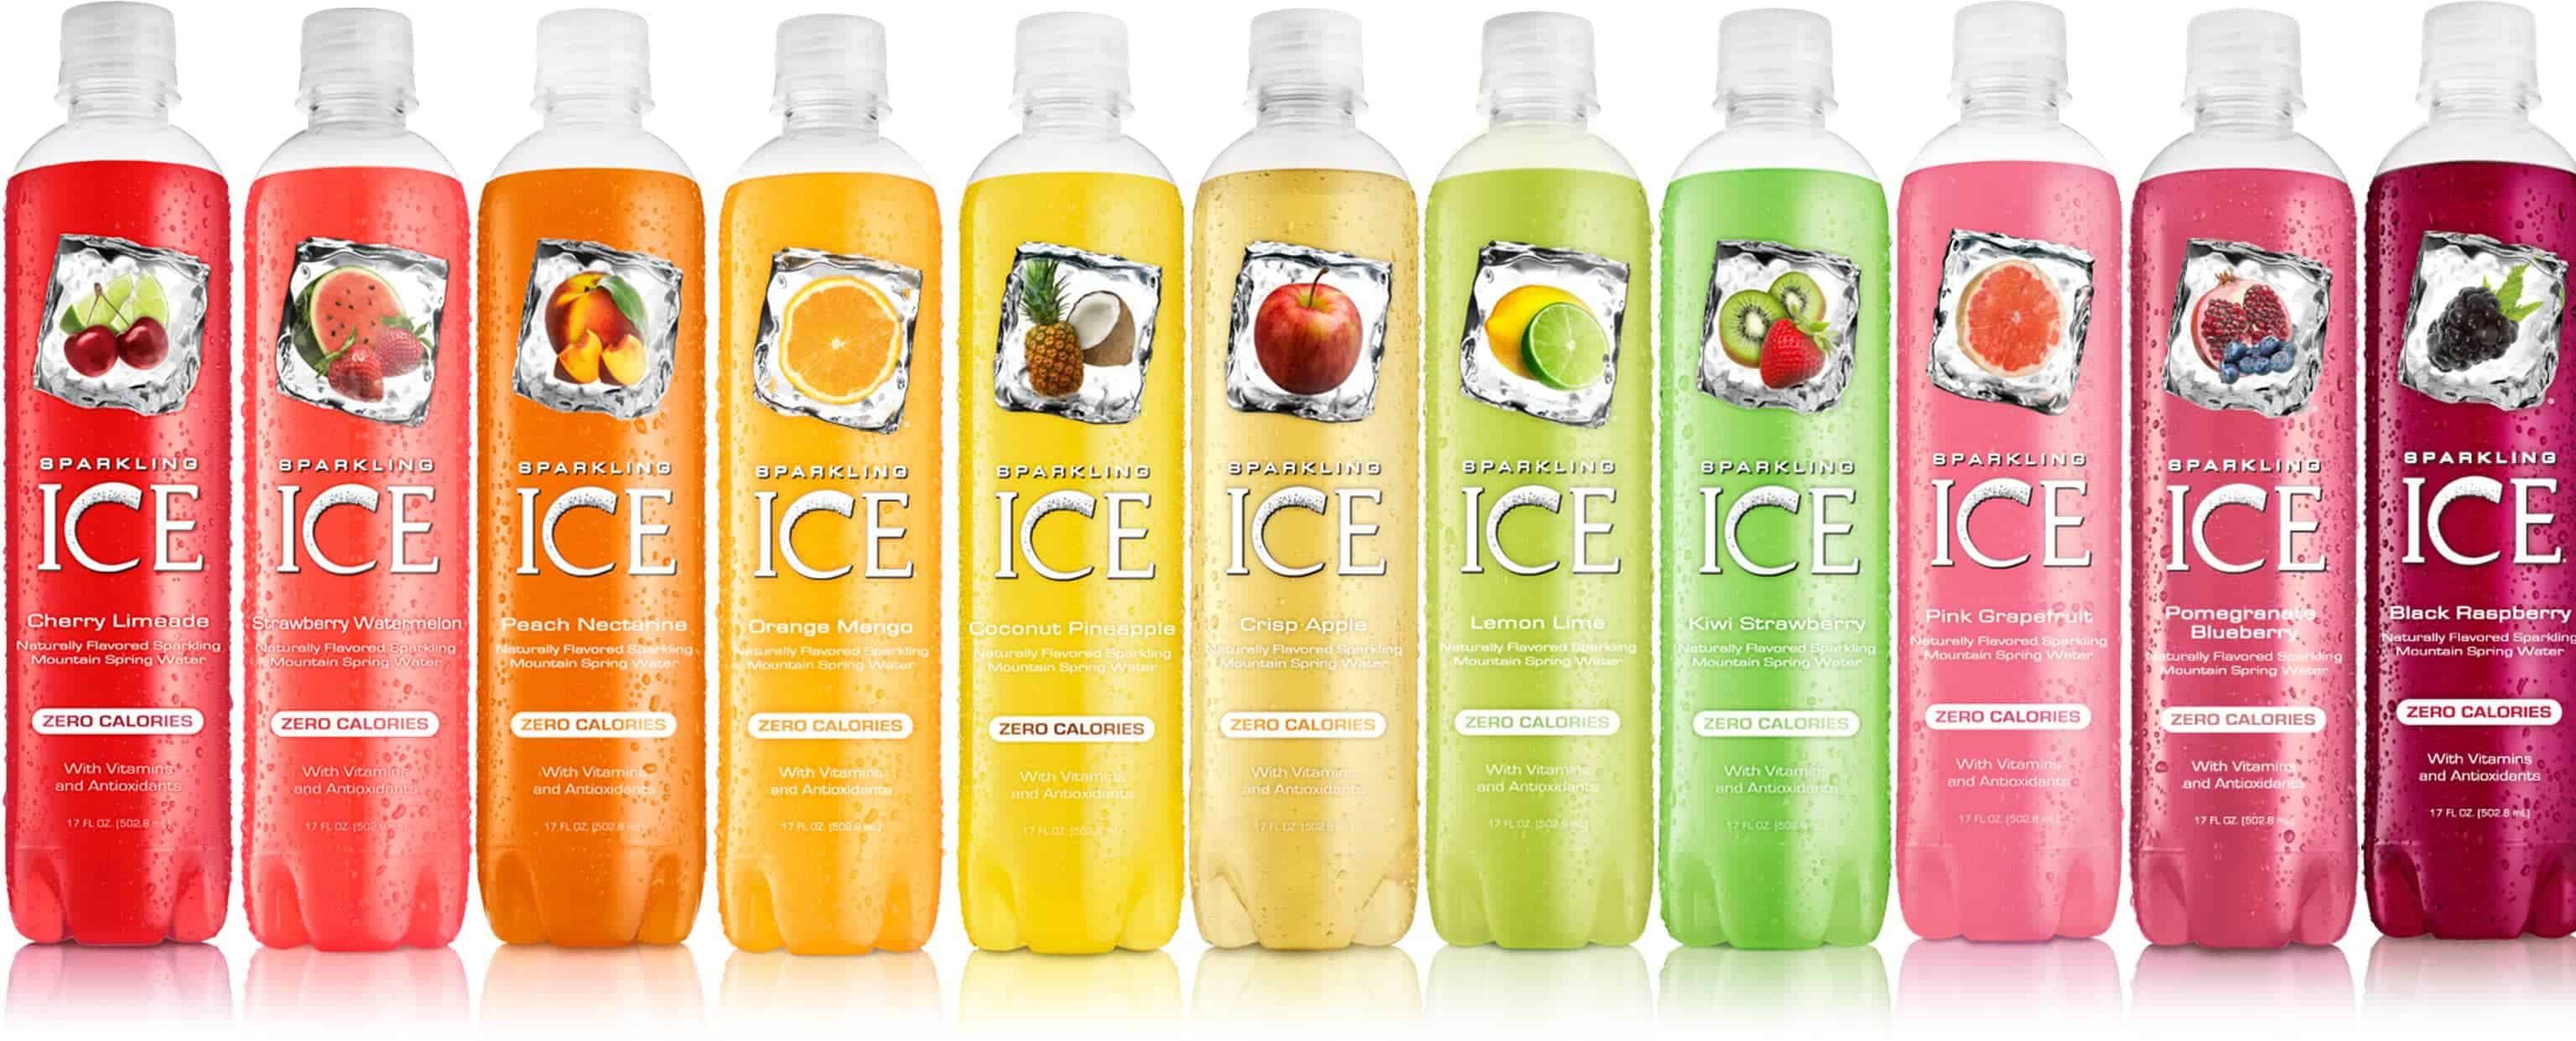 Sparkling ICE Review: Is it Better for You Than Soda?